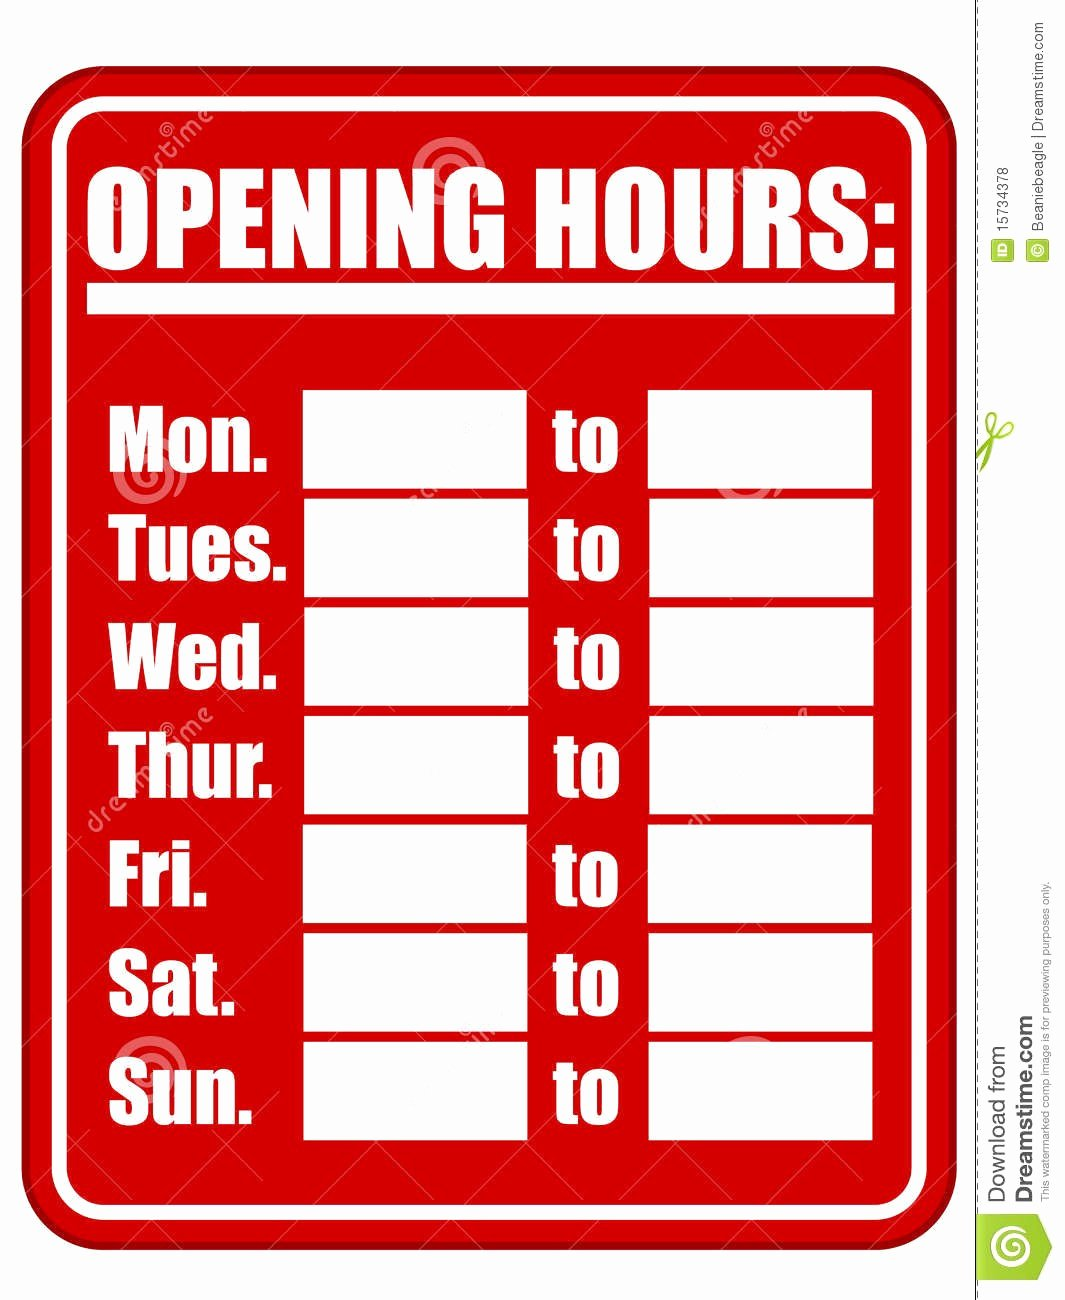 Printable Business Hours Sign Lovely Printable Business Hours Sign Template Tulsalutheran